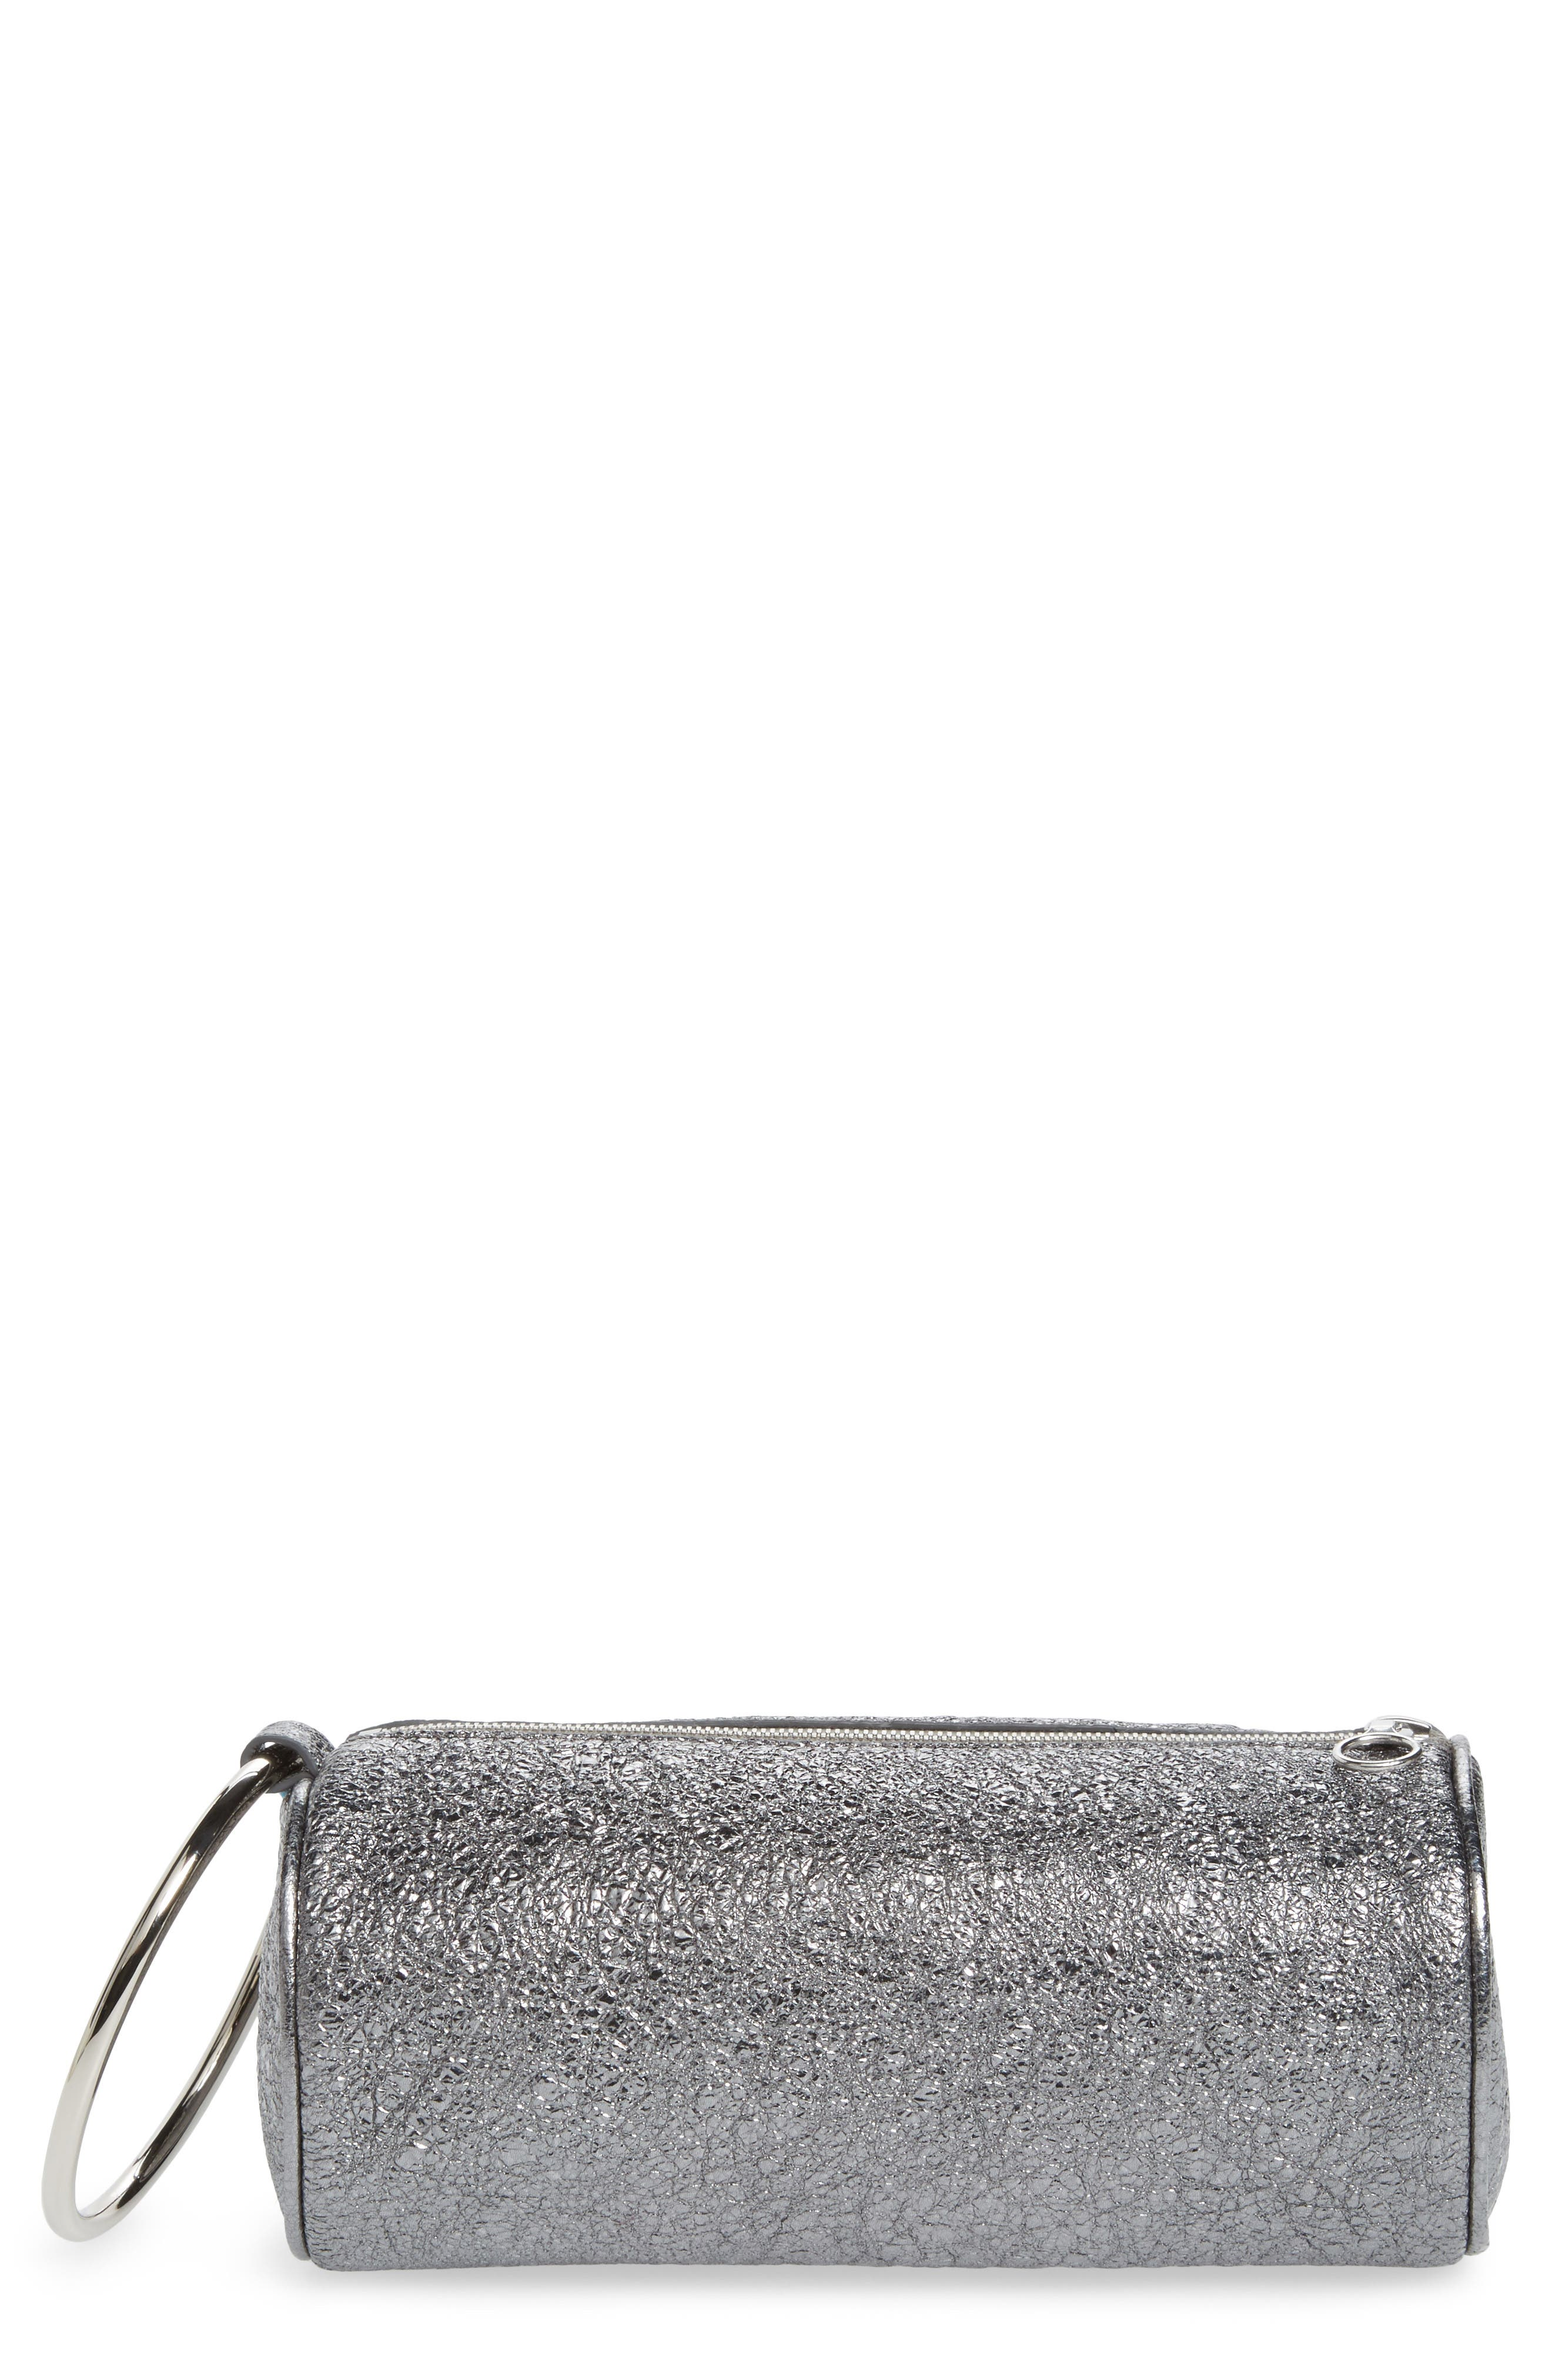 Crinkled Metallic Leather Duffel Wristlet Clutch,                             Main thumbnail 1, color,